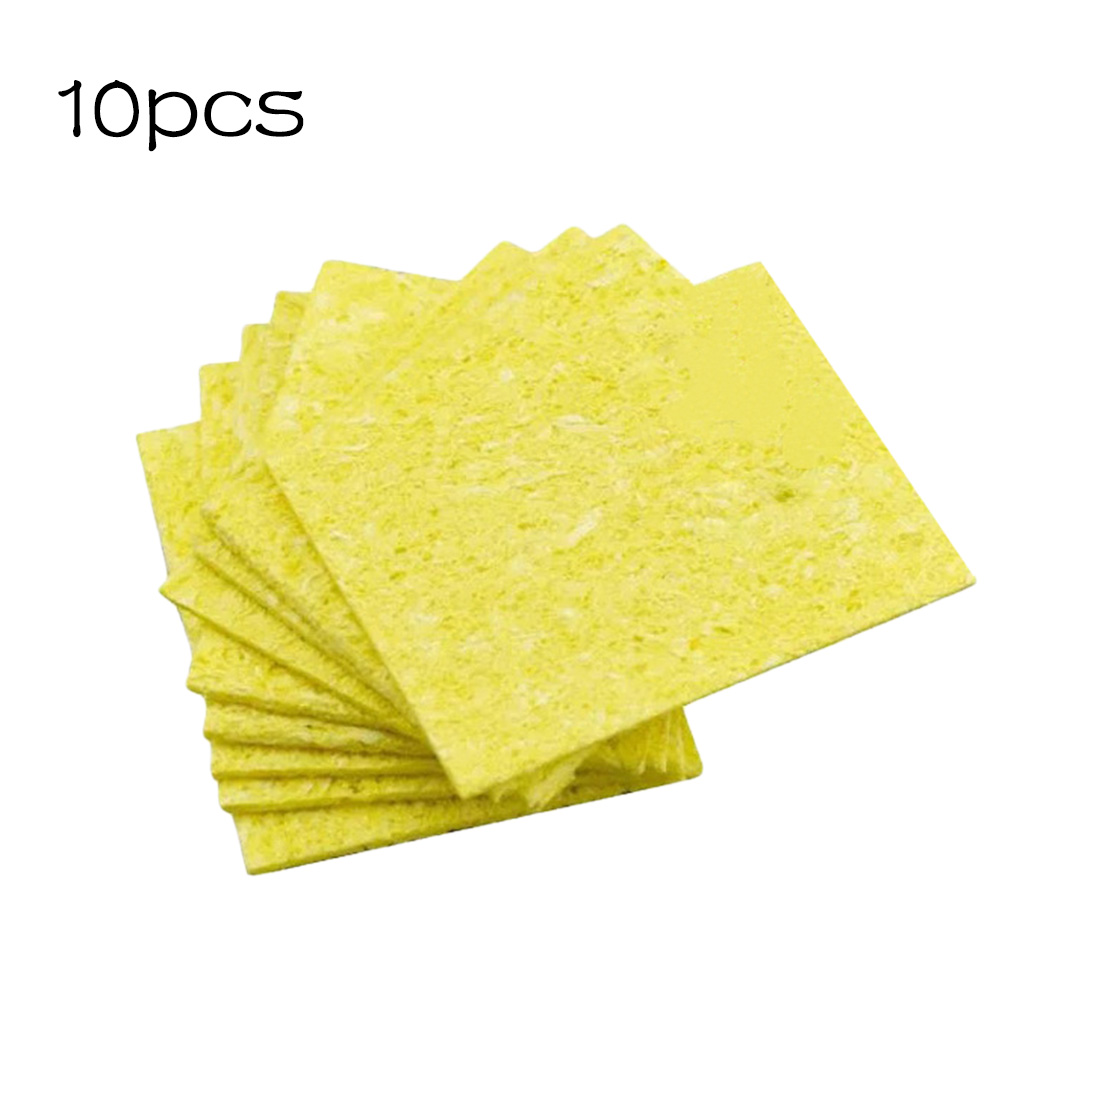 10pcs High Temperature Enduring Condense Electric Welding Soldering Iron Cleaning Sponge Yellow Welding Accessories wlxy wl 002 mini soldering iron stand w cleaning sponge black yellow